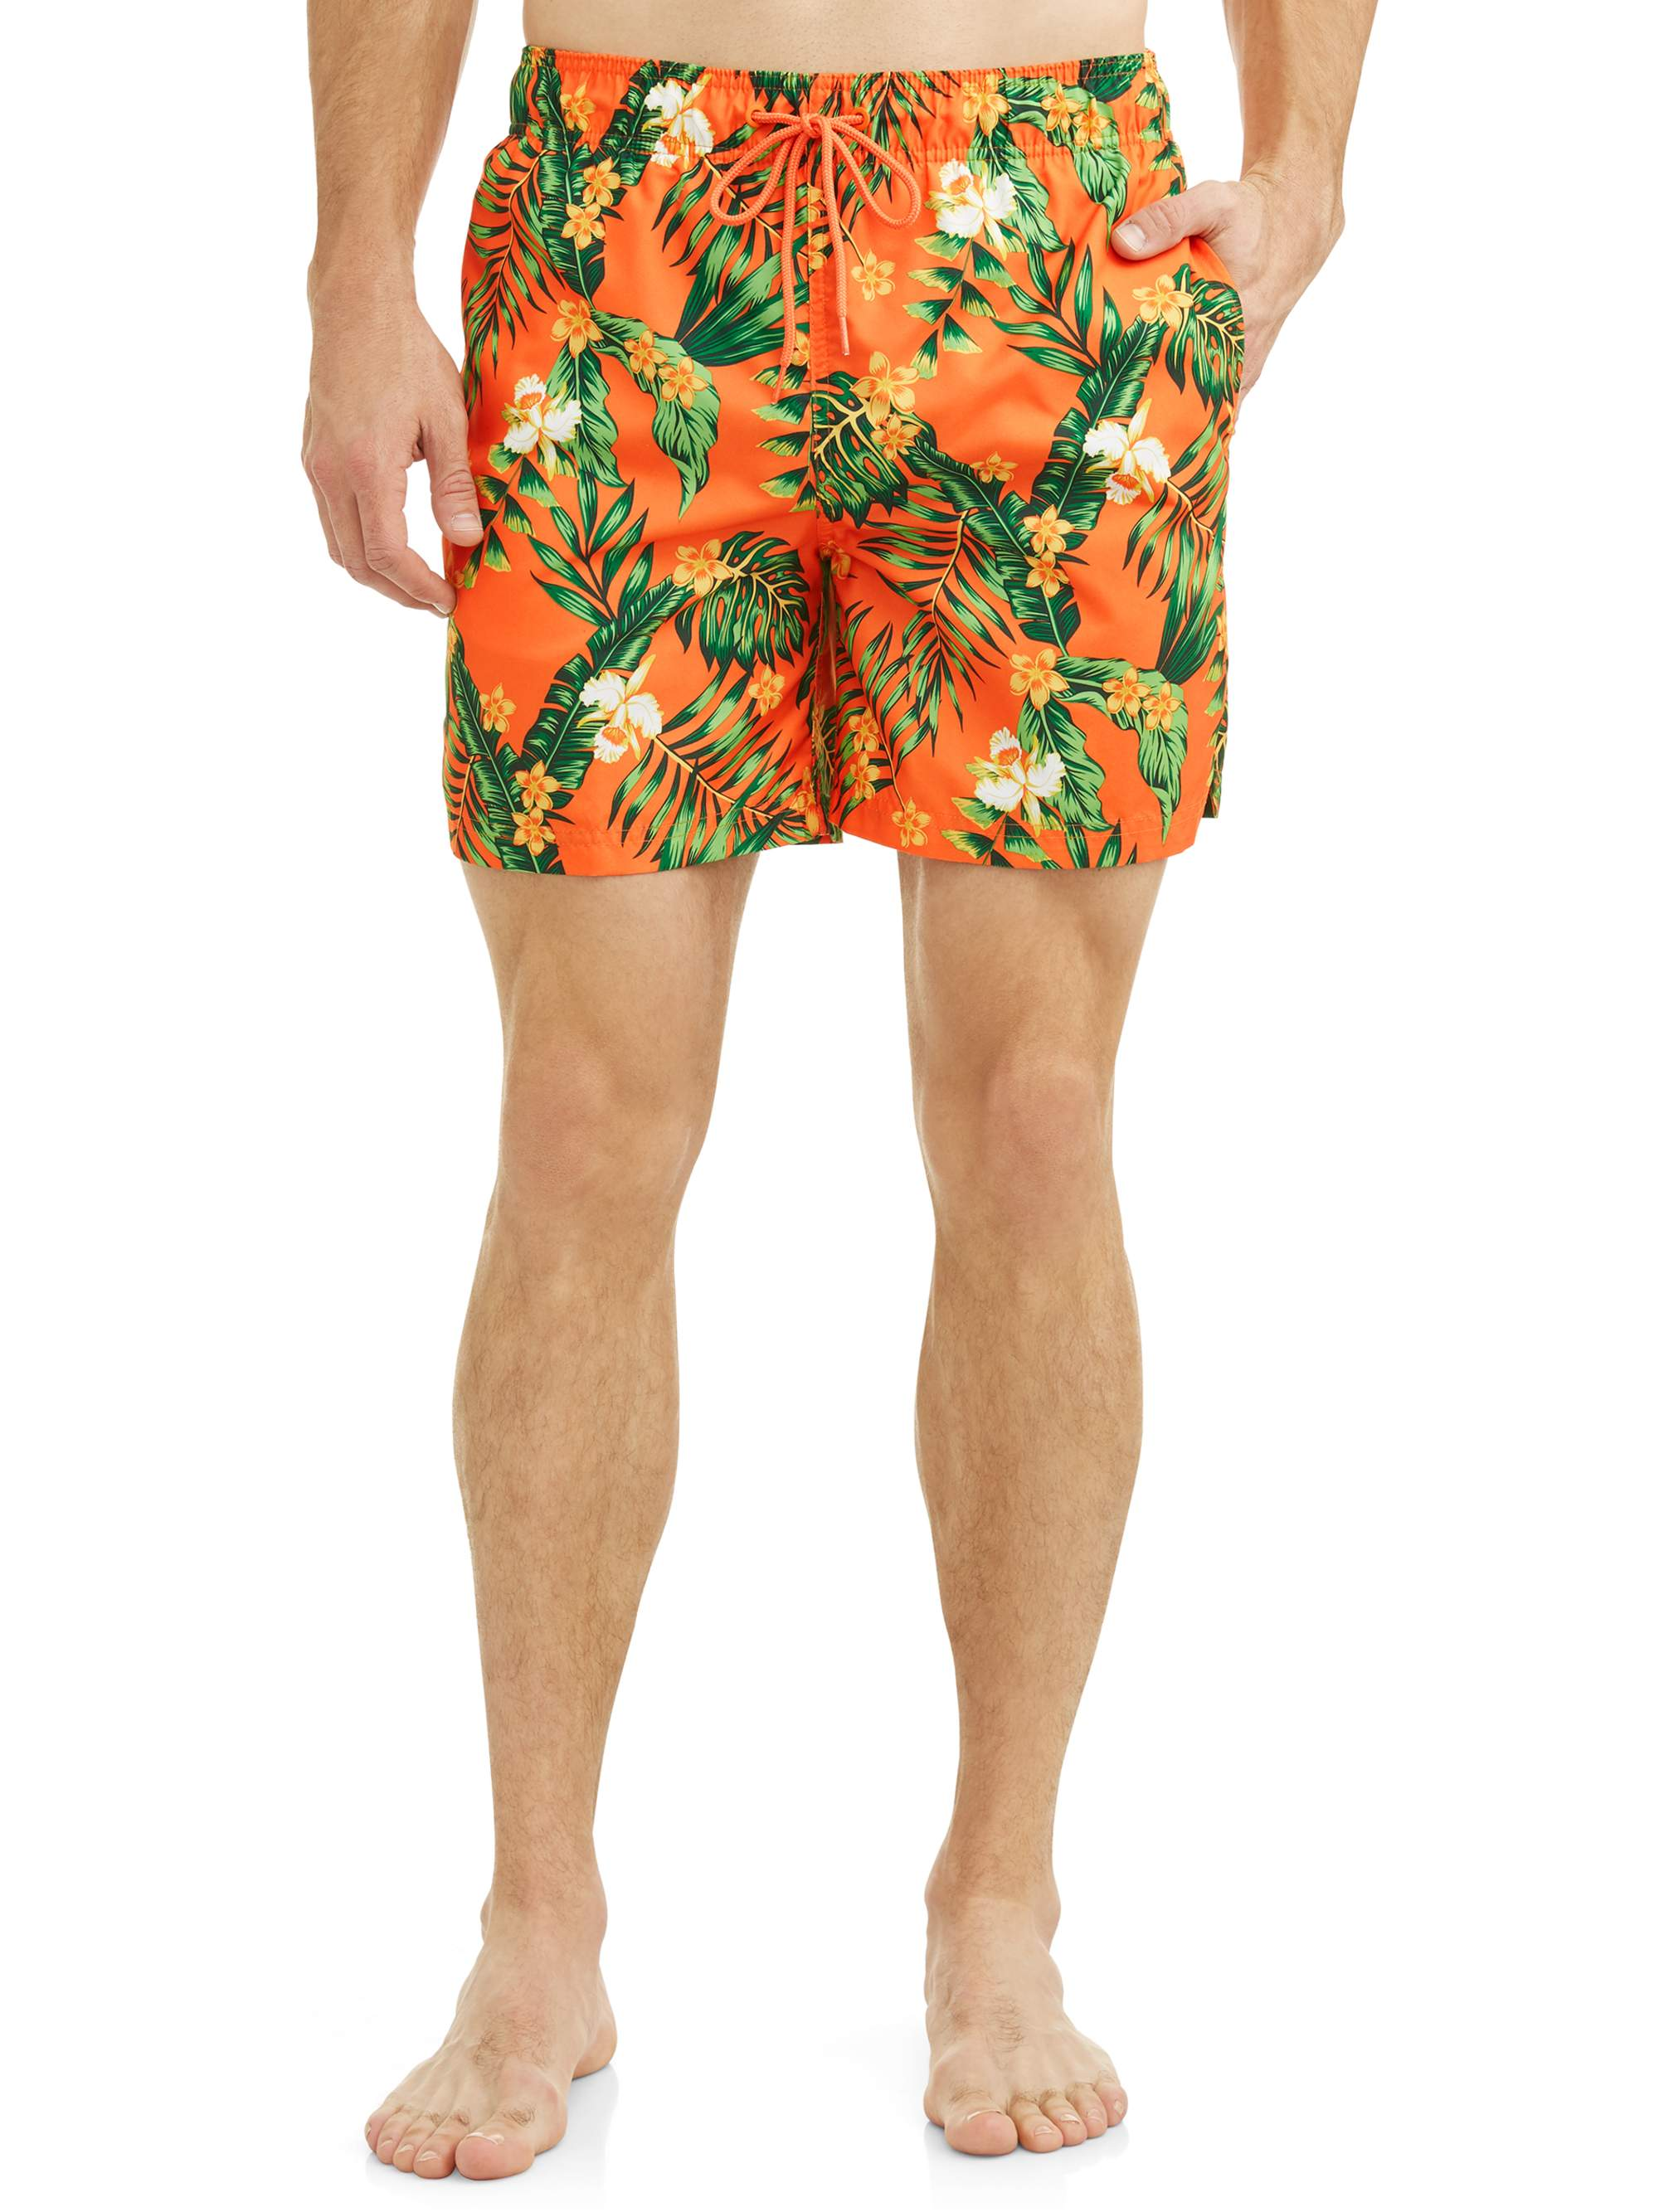 442f0e7e9258c George - George Men's Novelty Eboard Swim Short, Up to Size 5XL -  Walmart.com